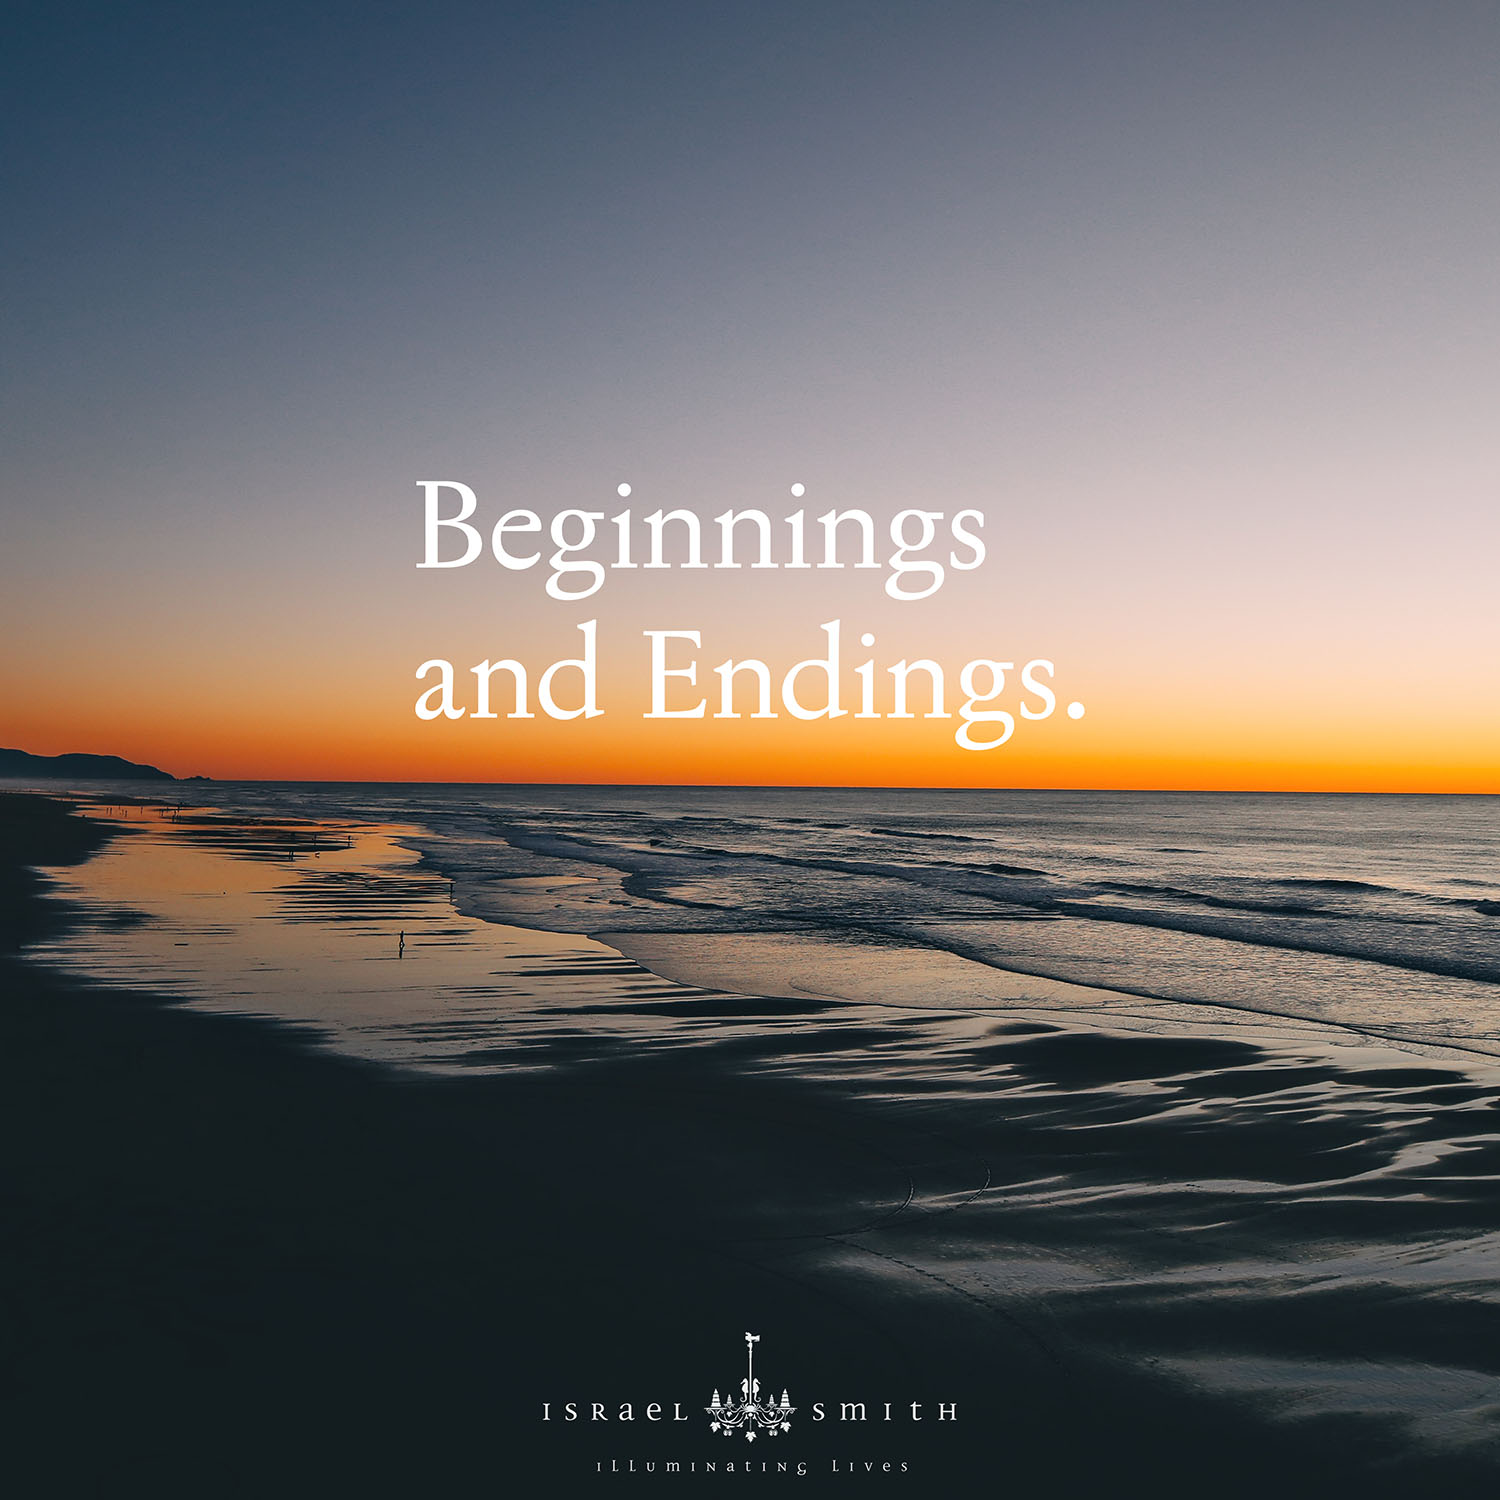 Beginnings and Endings.